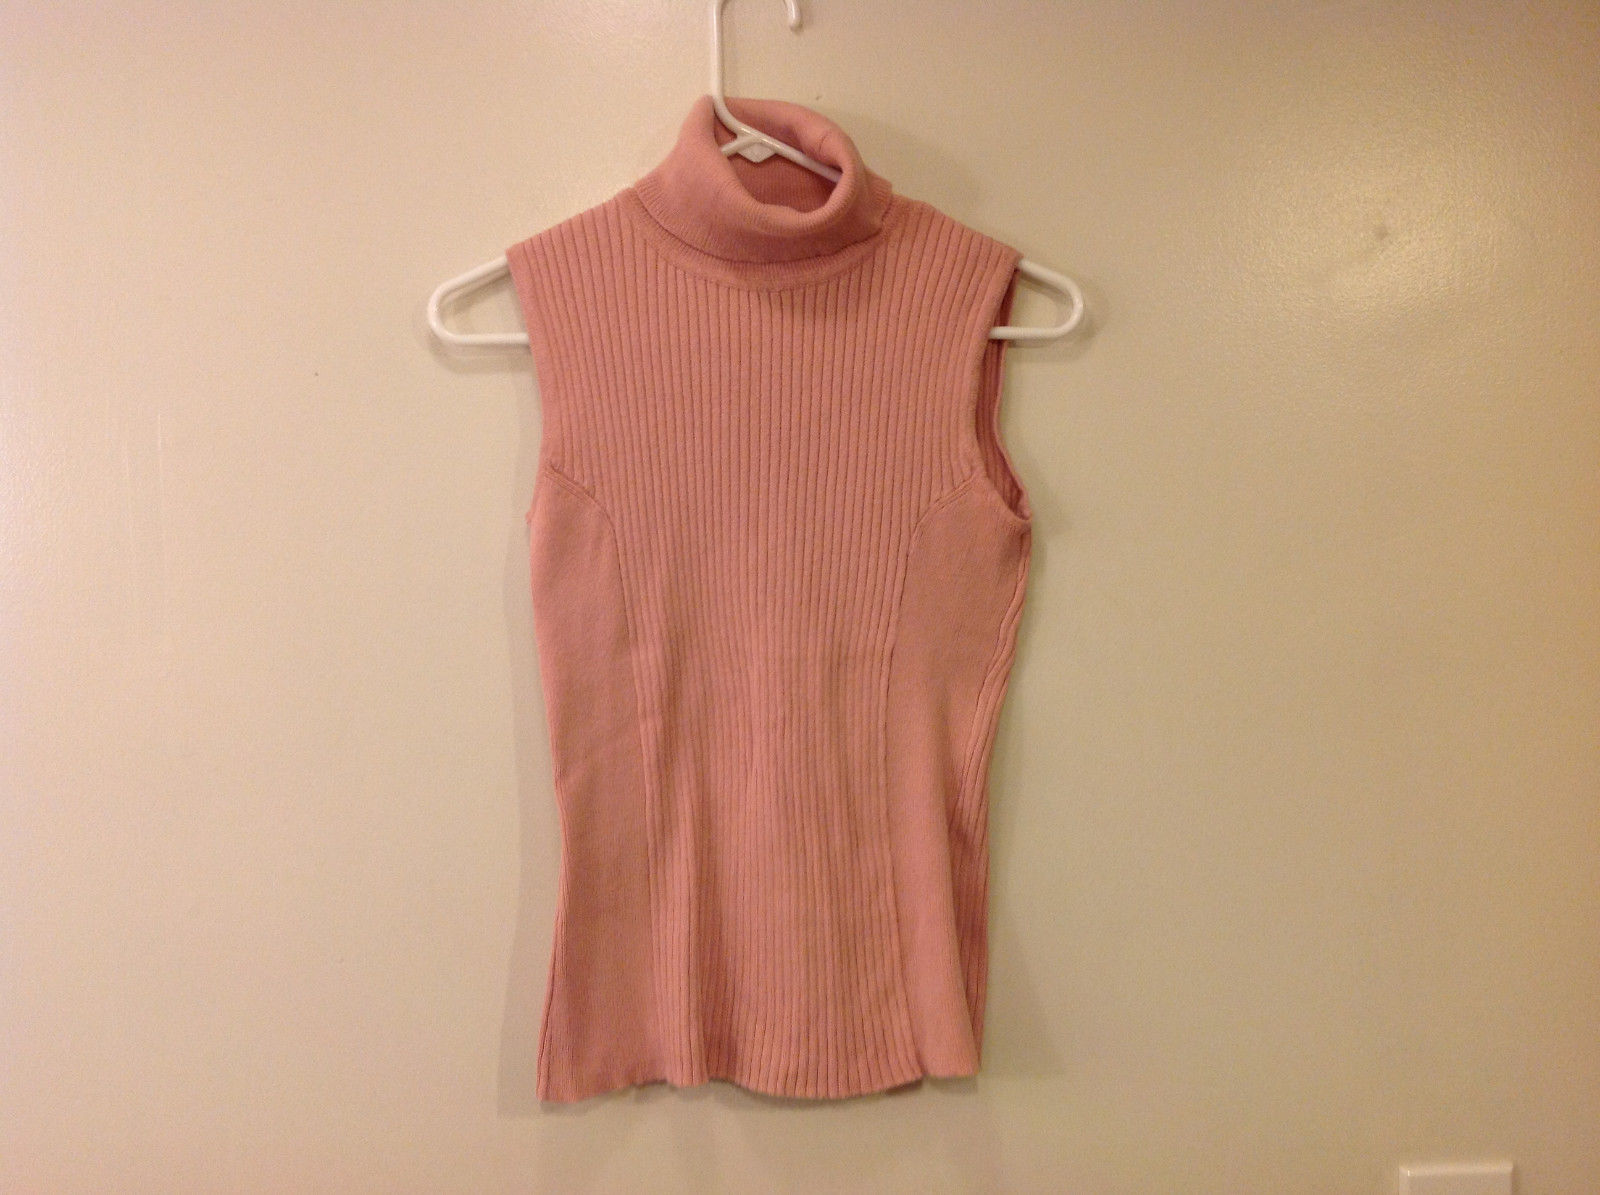 axcess Liz Claiborne Women's Size M Turtleneck Sweater Sleeveless Rose Pink